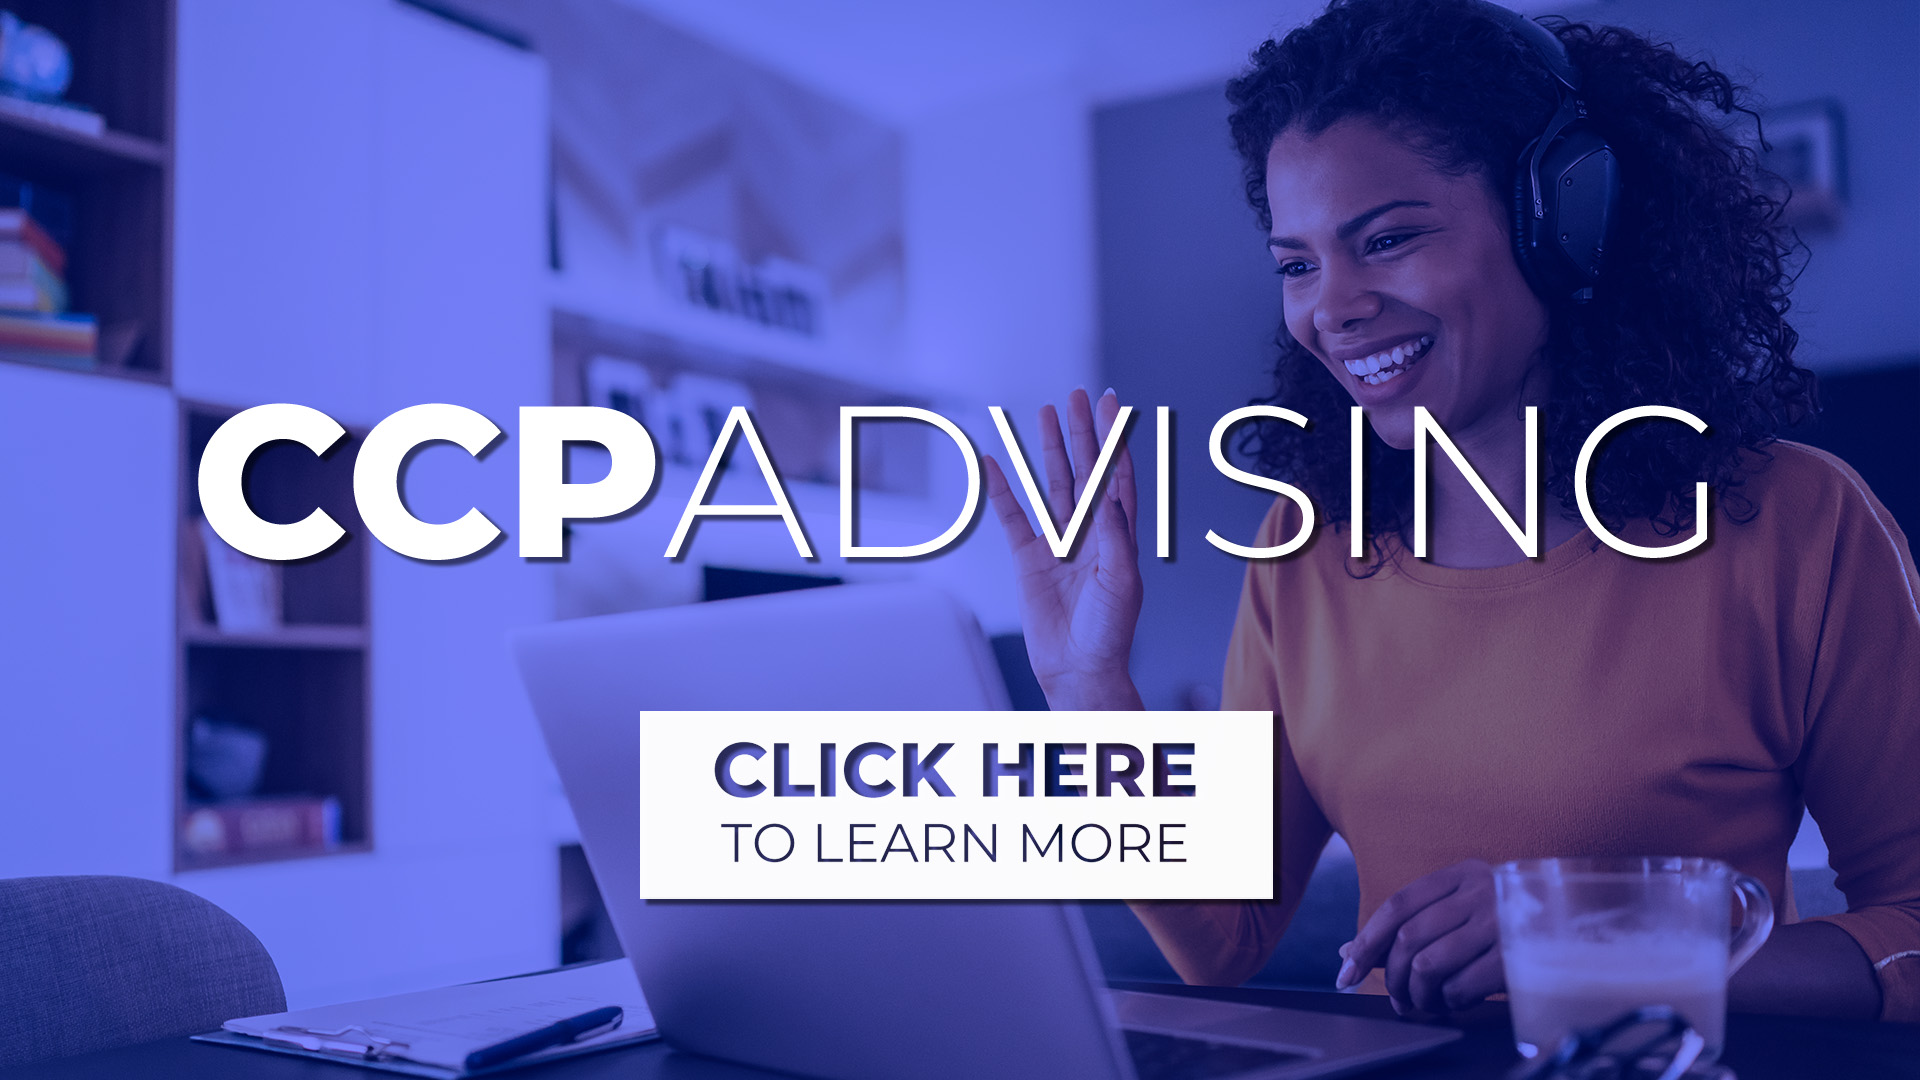 CCP Advising. Click here to learn more.